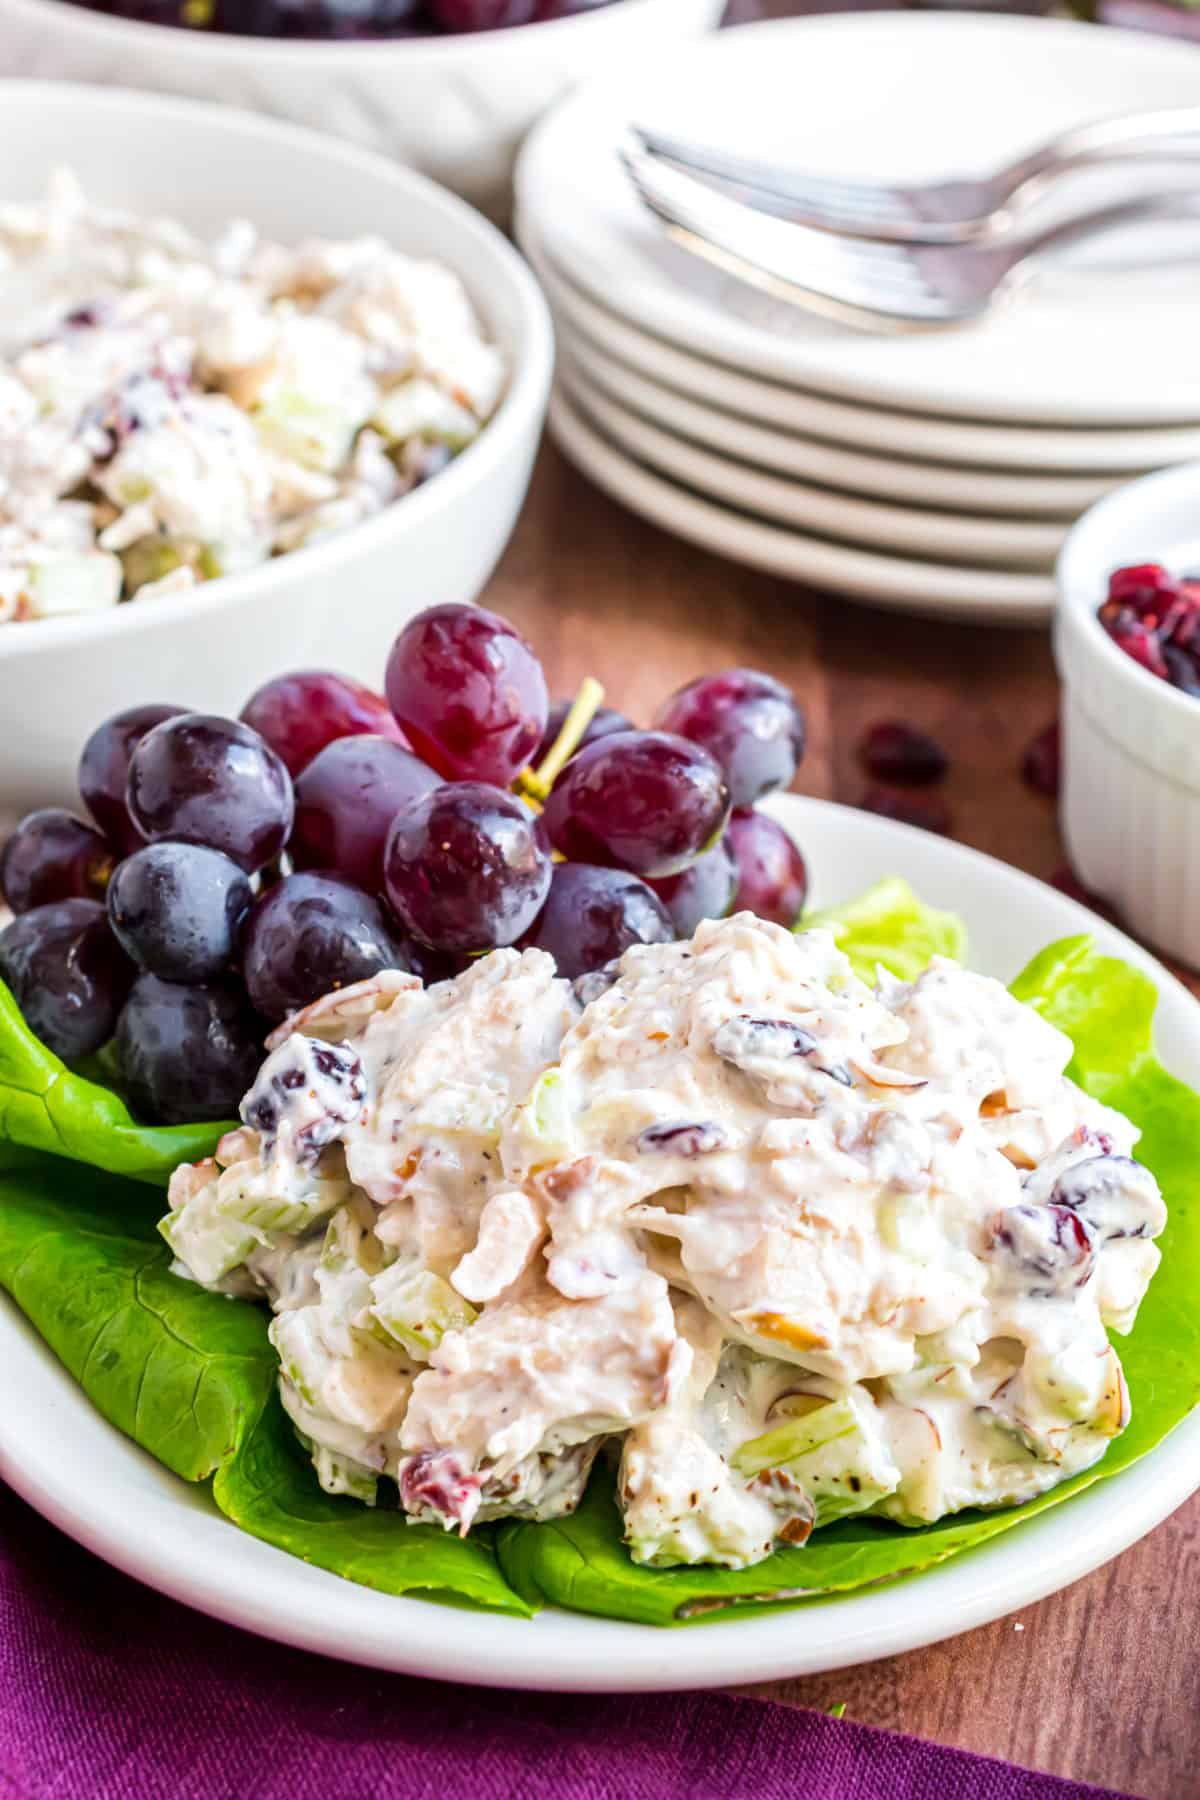 Chicken salad served on a bed of lettuce with red grapes on plate.